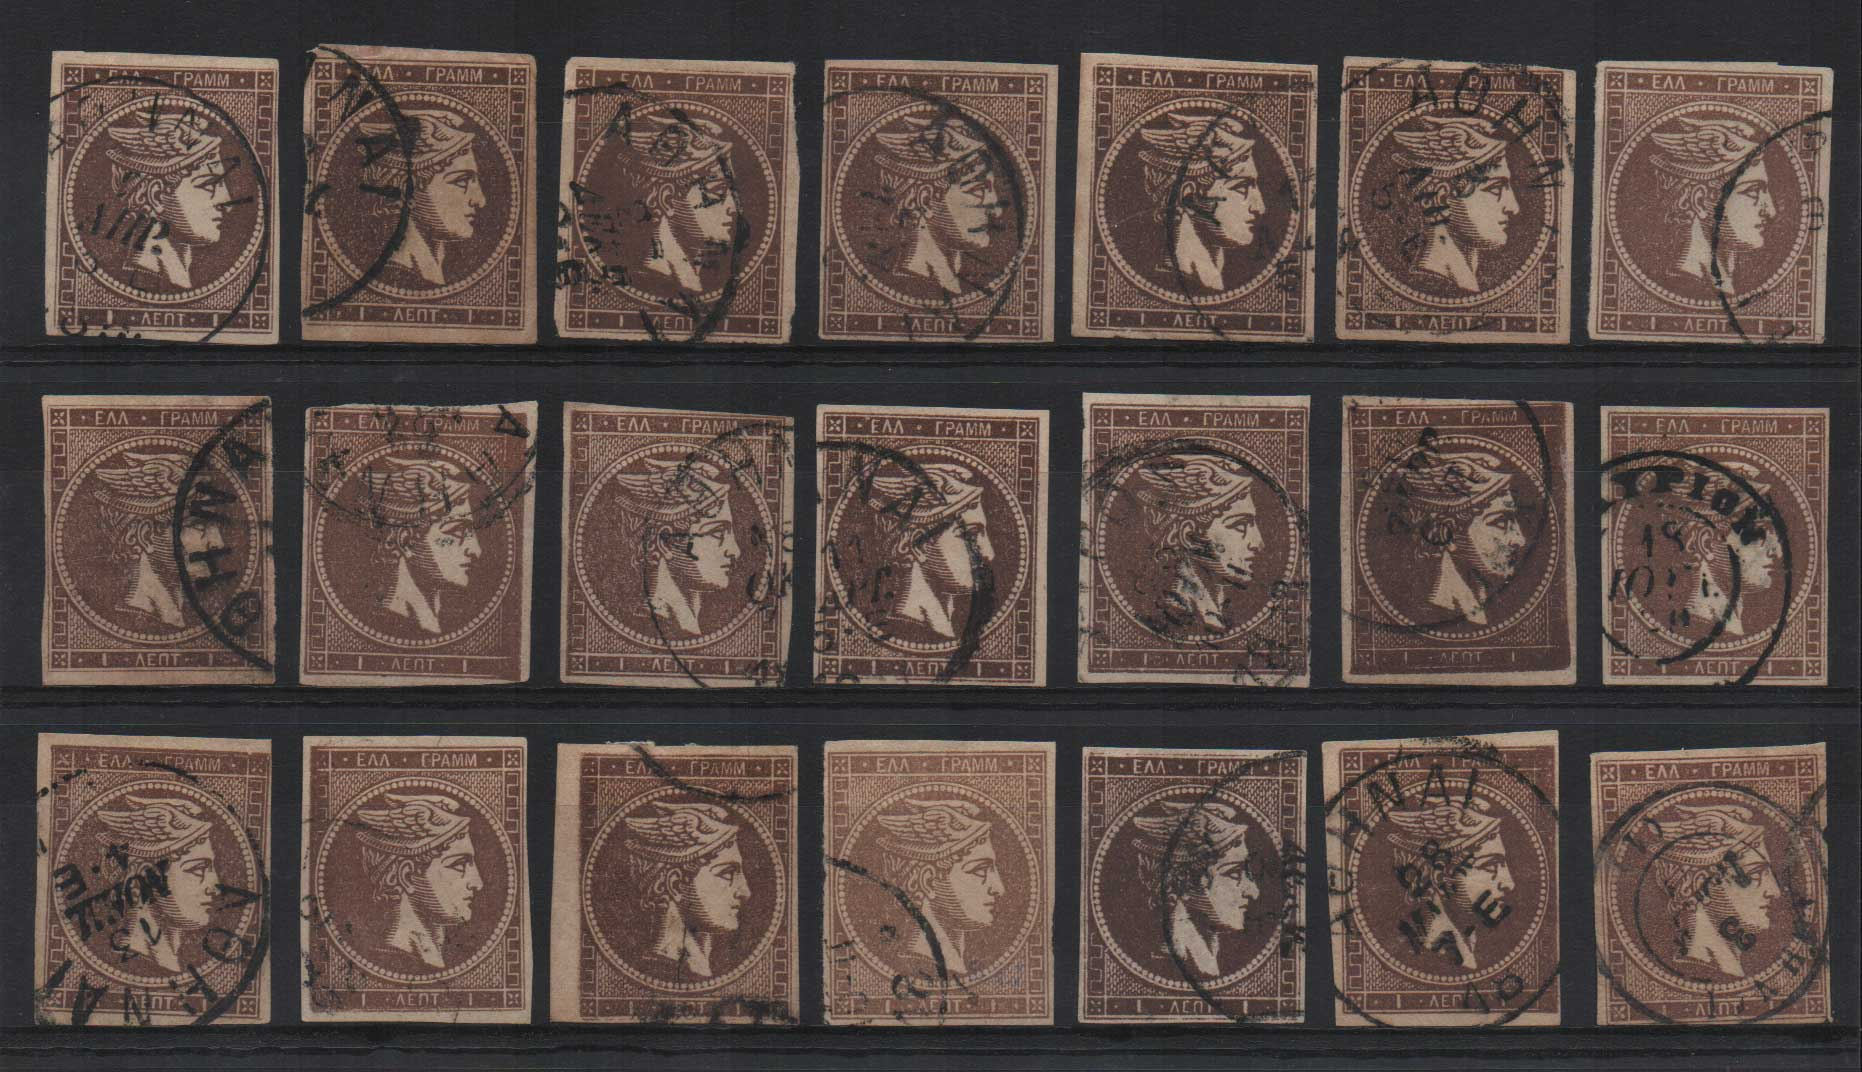 Lot 21 - GREECE-  LARGE HERMES HEAD large hermes head -  Athens Auctions Public Auction 63 General Stamp Sale